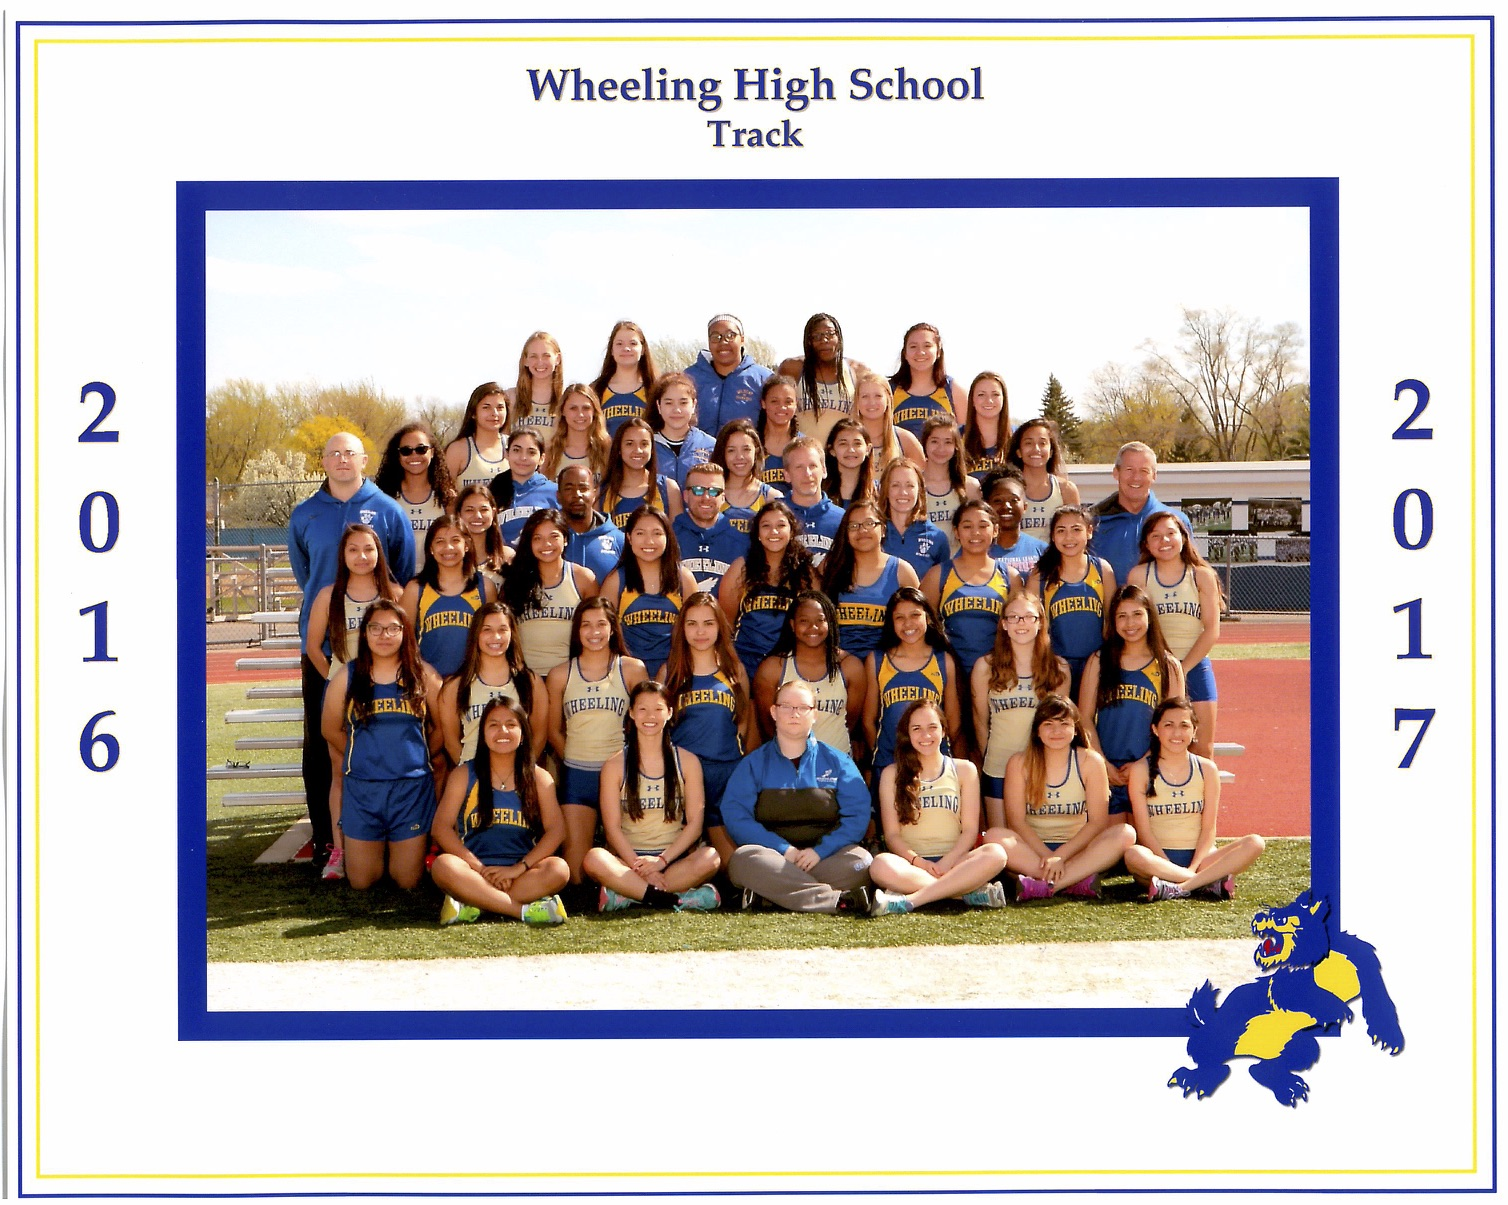 Wheeling High School Girls Track & Field